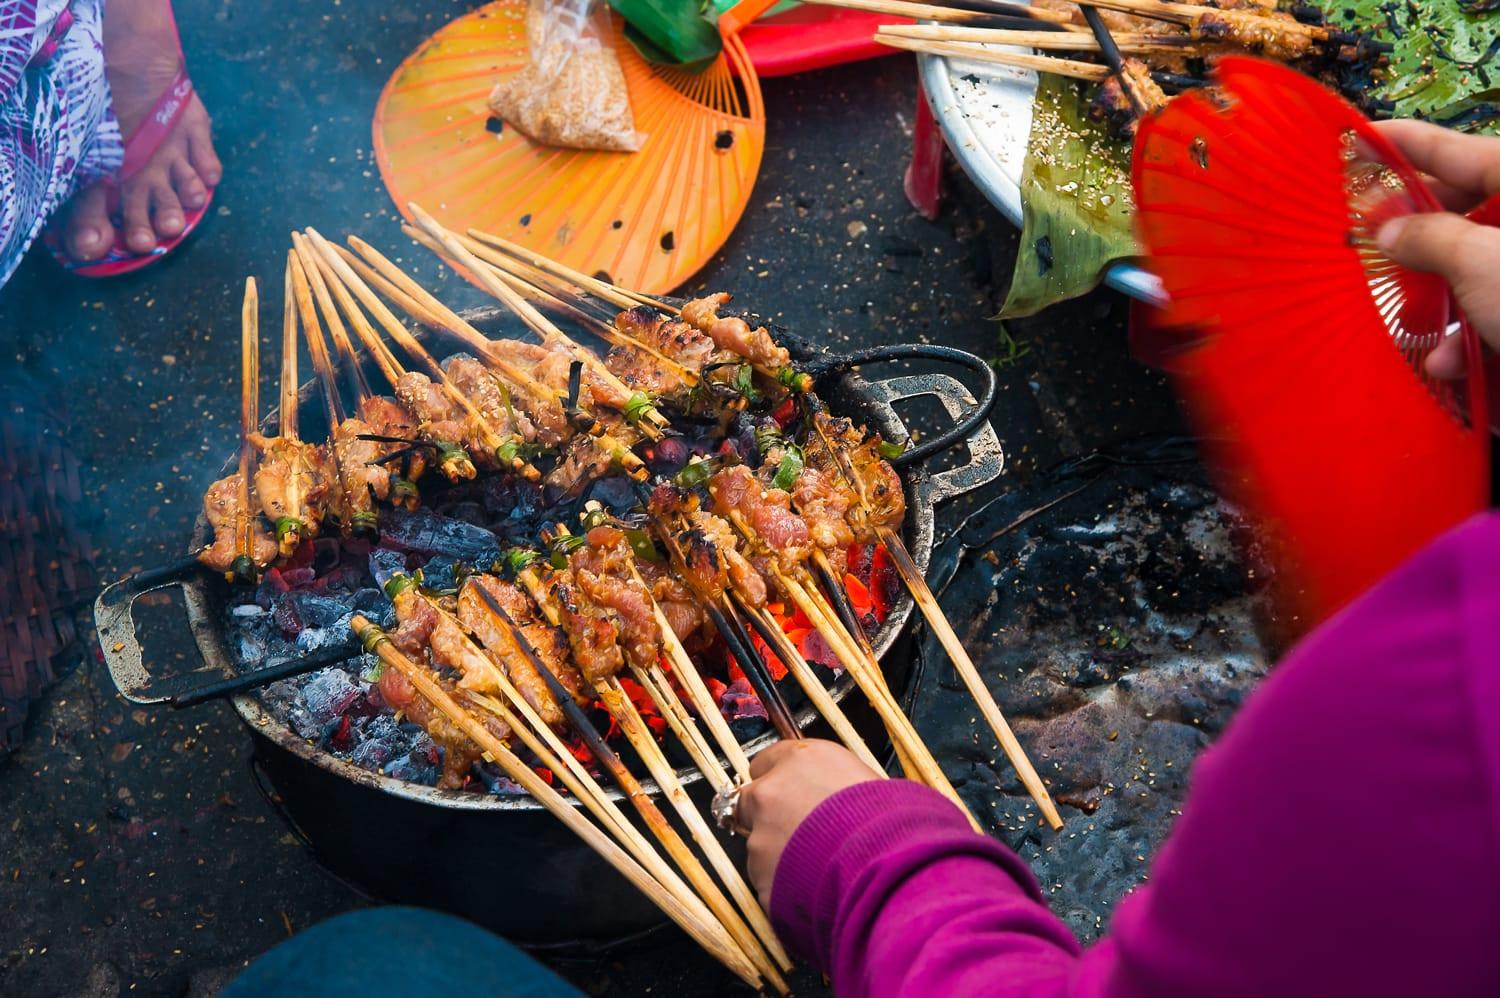 Hawker prepare the skewered grilled meats at street of Hoi An, a local delicacy of Vietnam